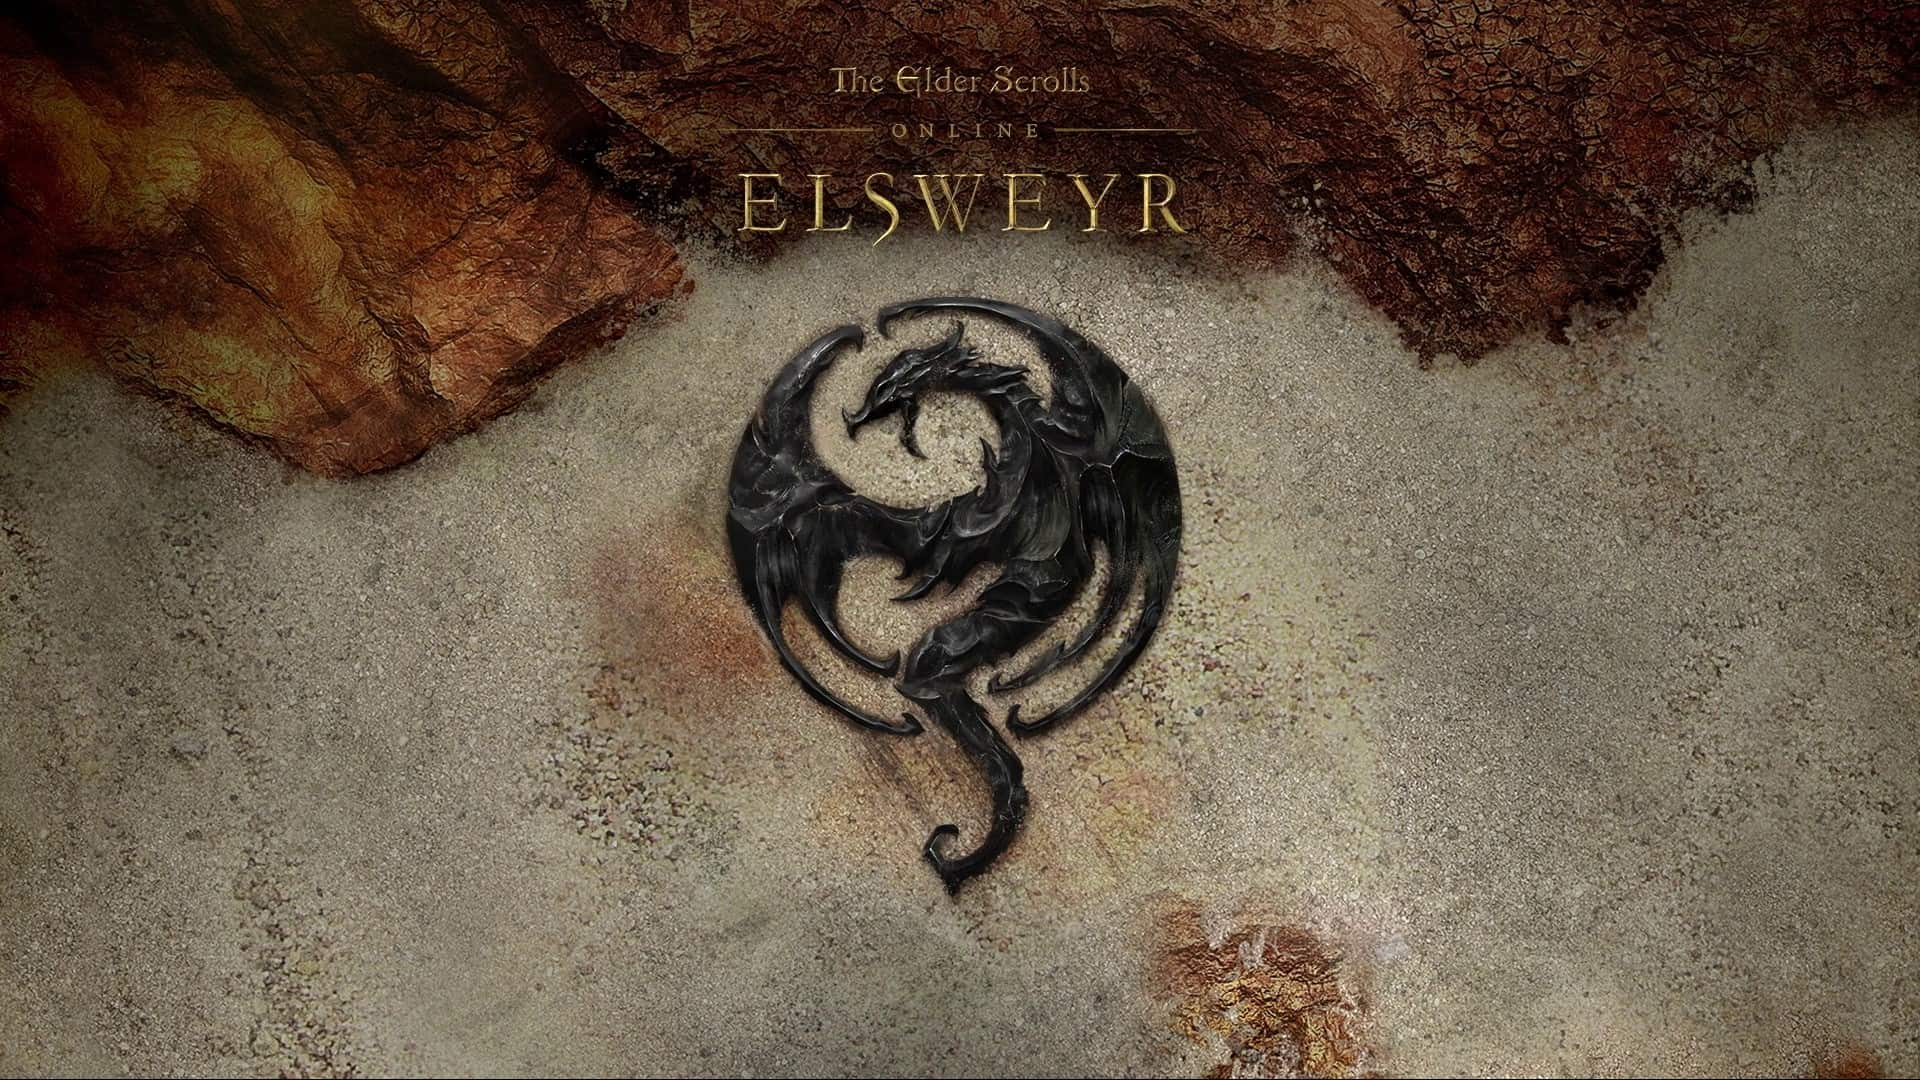 Elder Scrolls Online - PC/MAC Early Access Elsweyr Chapter Available